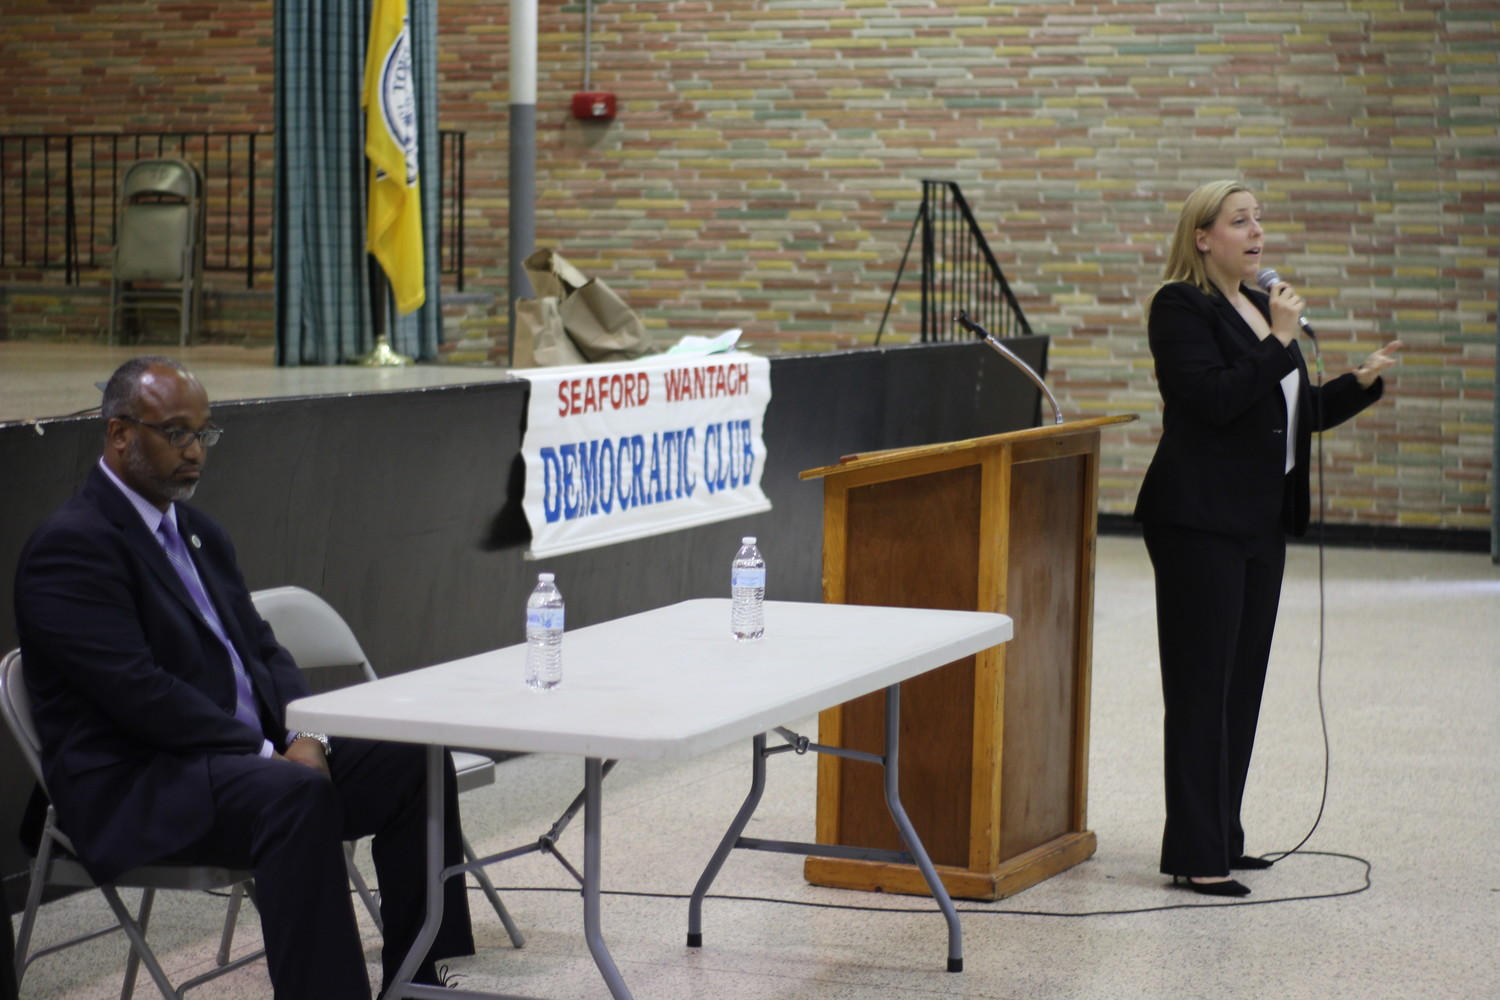 Liuba Grechen Shirley is a first time candidate, running against King for the 2nd Congressional District which includes Seaford and parts of Wantagh